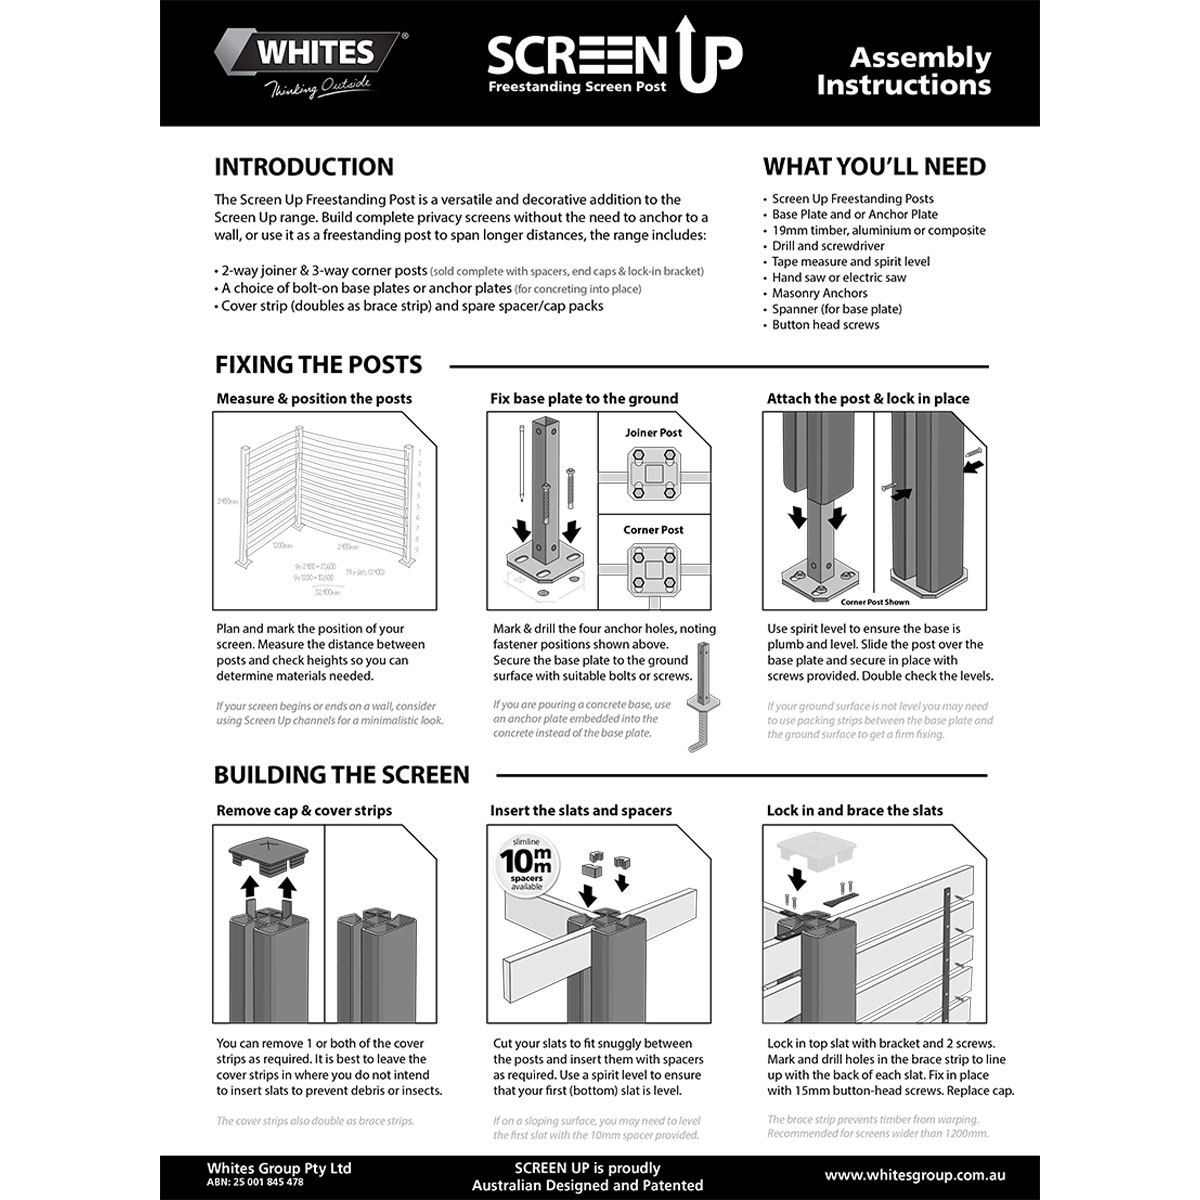 Screen up Freestanding instructions